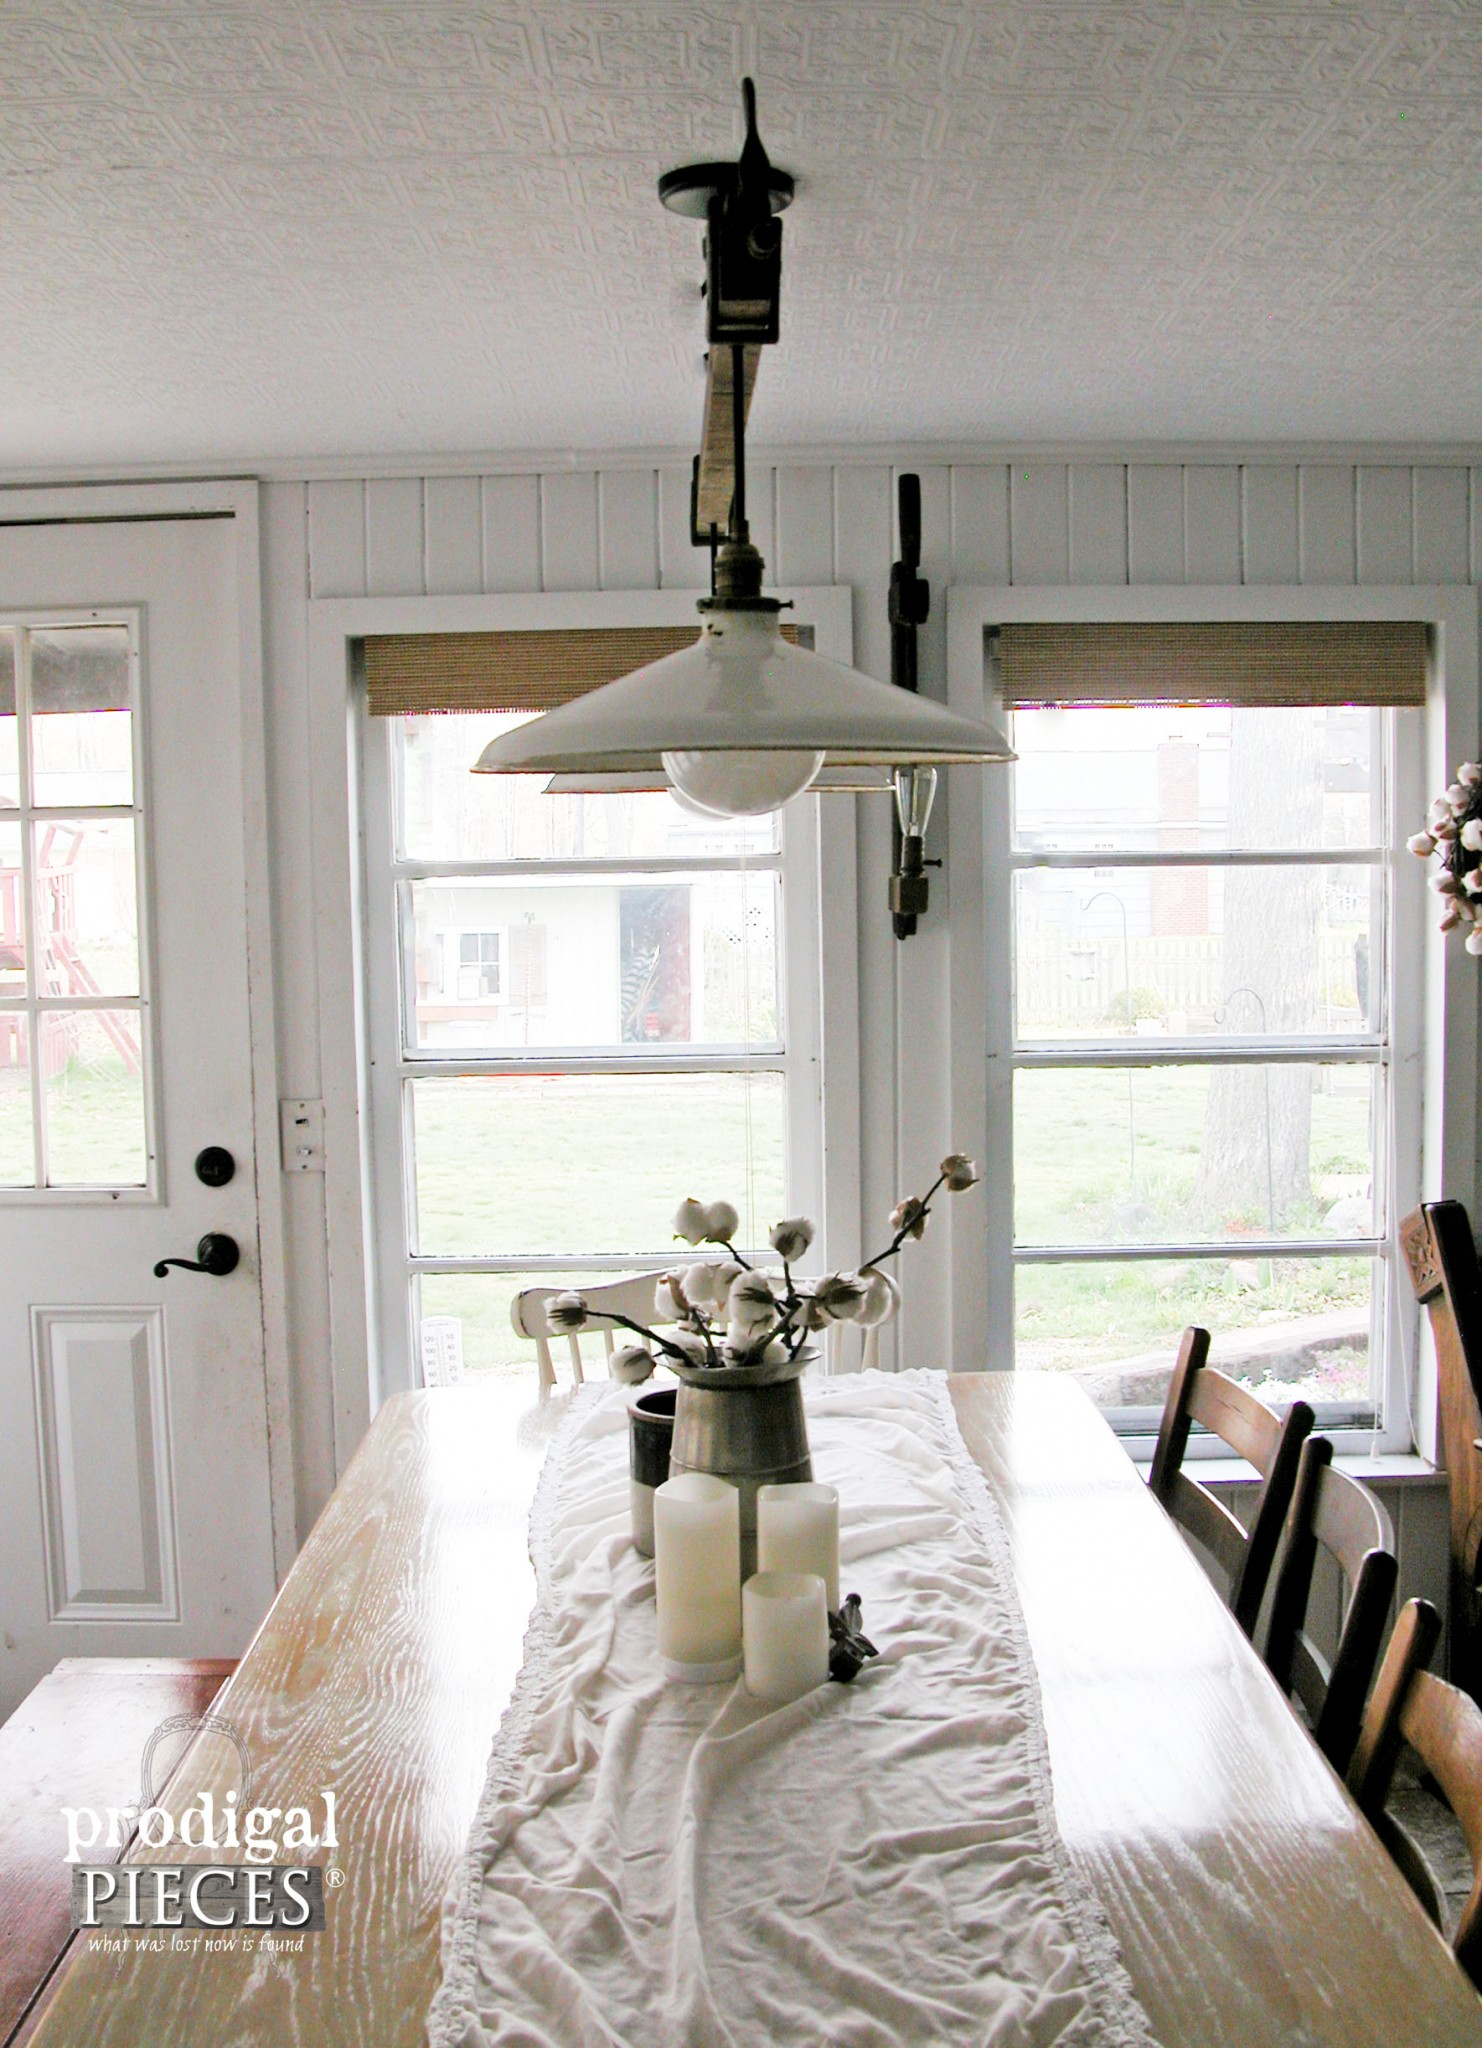 Dining Table with Repurposed Farmhouse Lighting by Prodigal Pieces | www.prodigalpieces.com